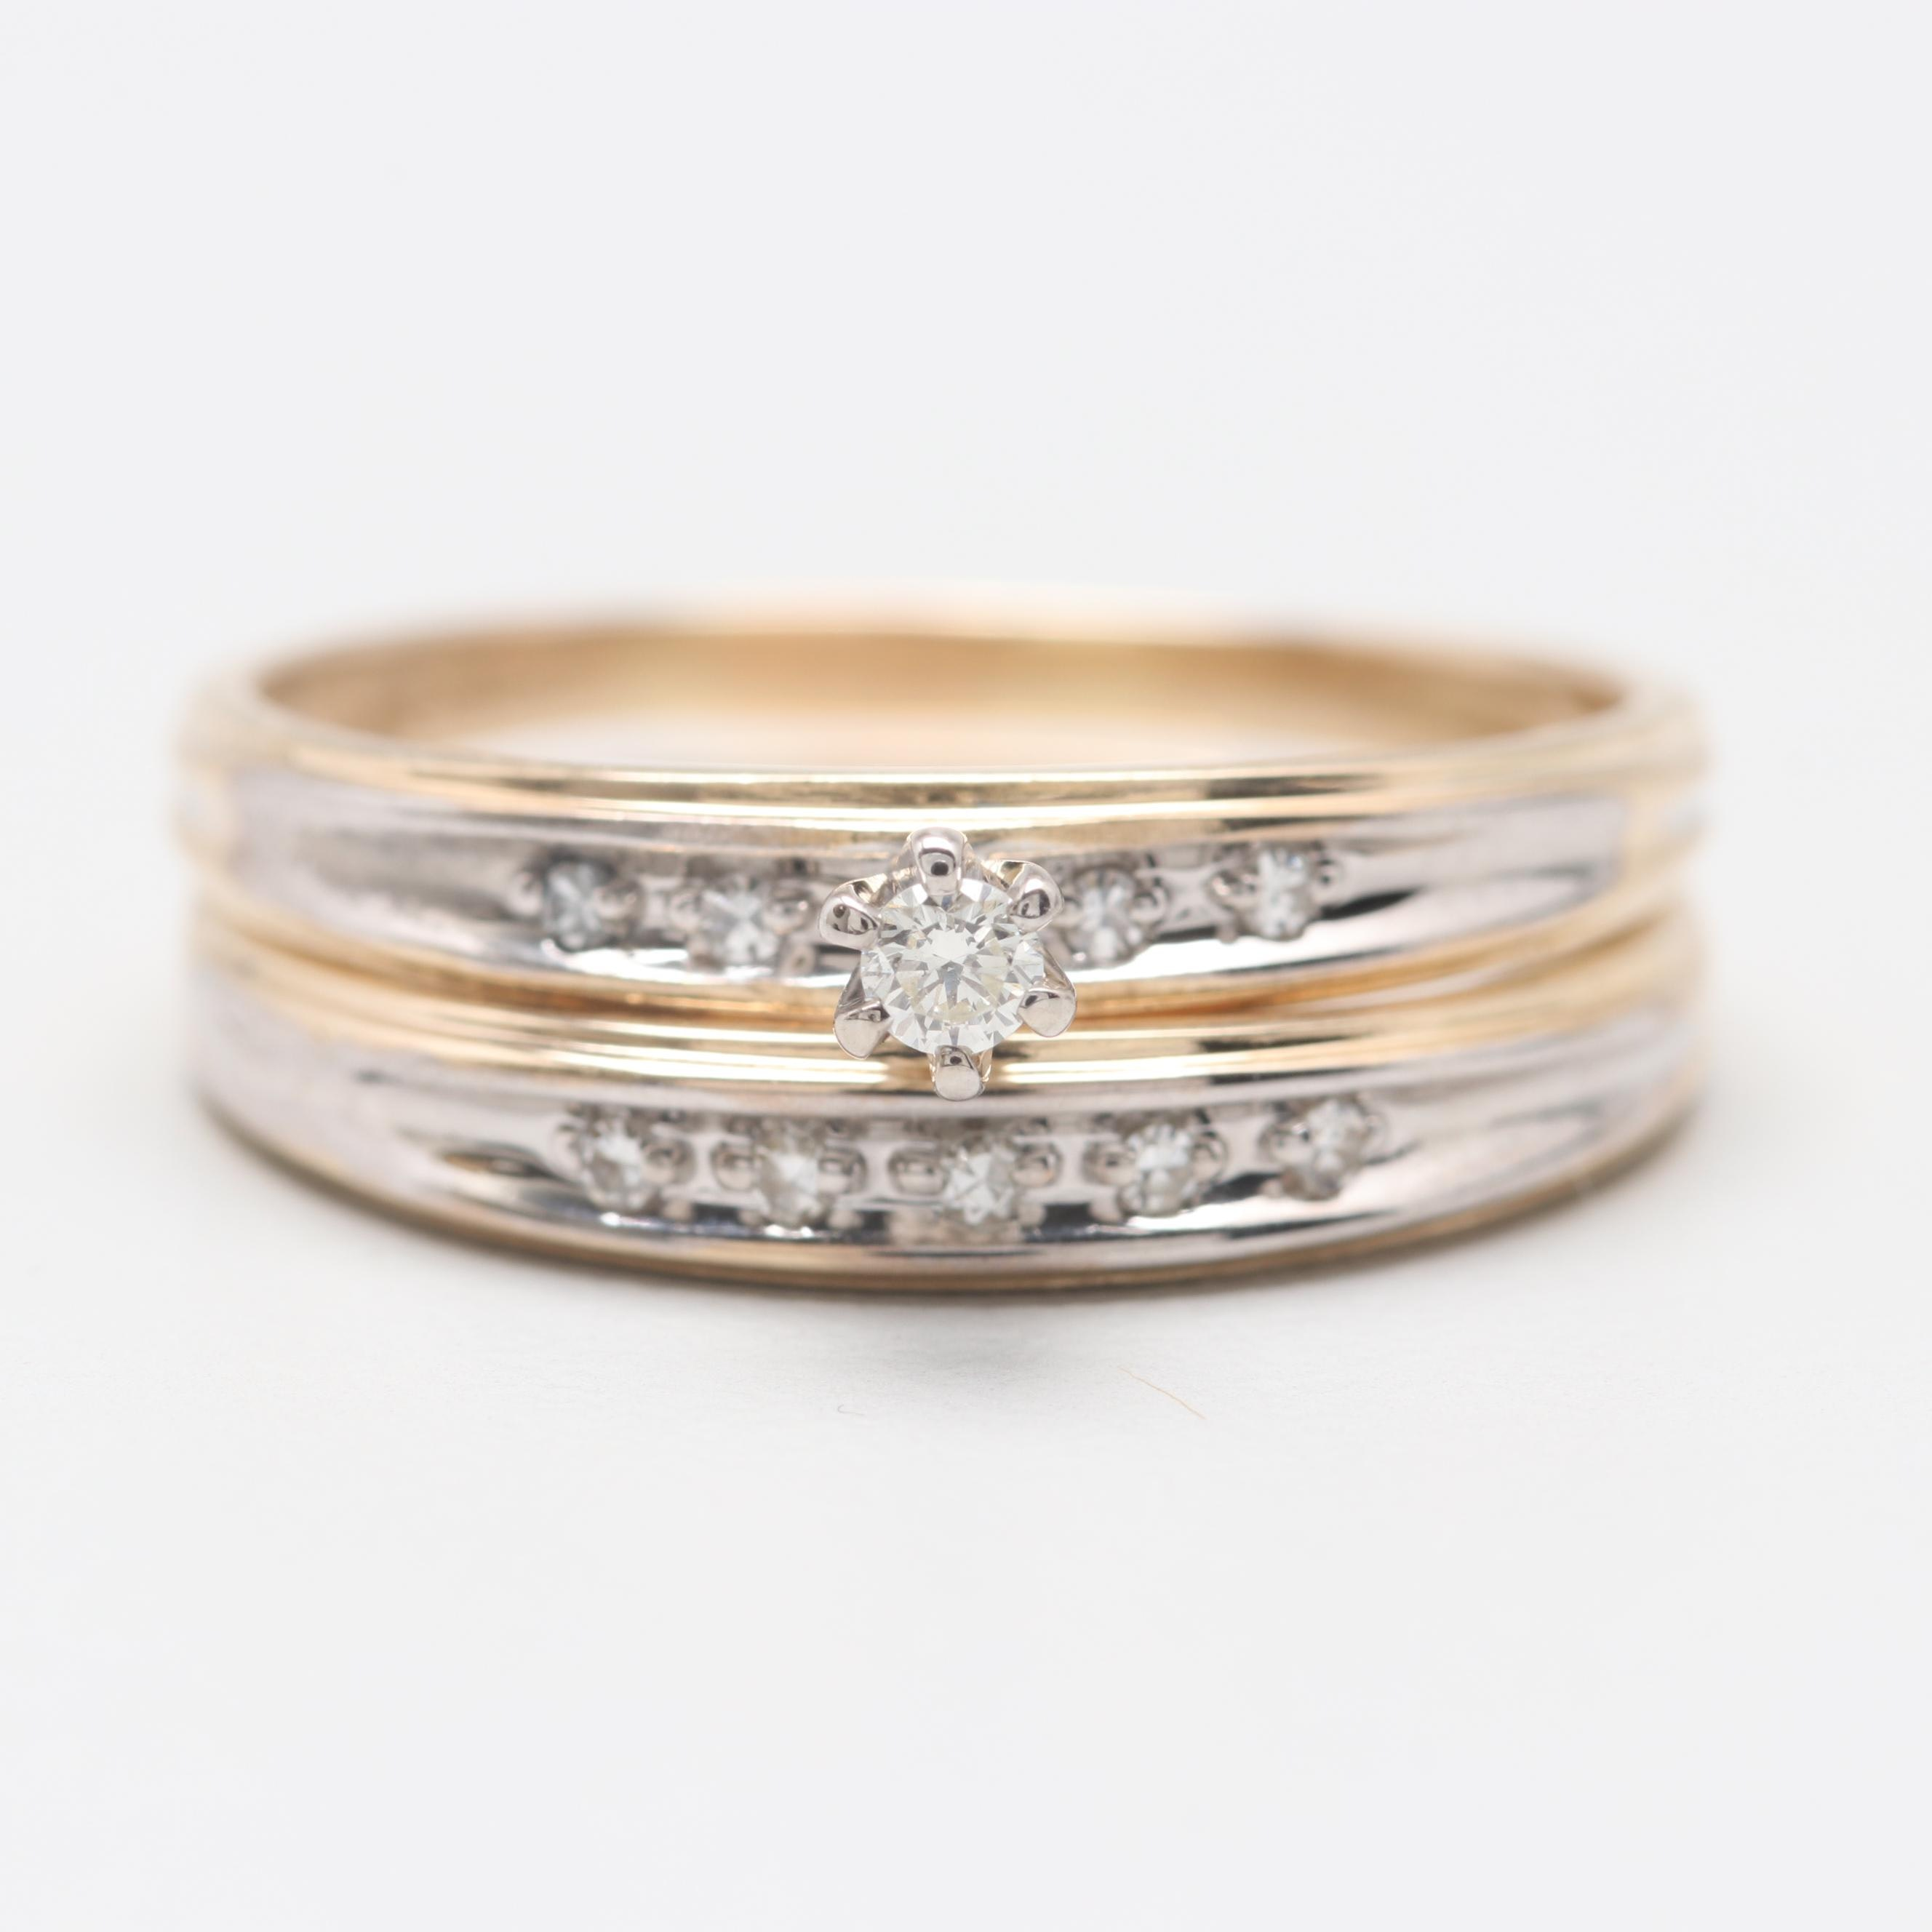 14K Yellow Gold Diamond Wedding Ring Set